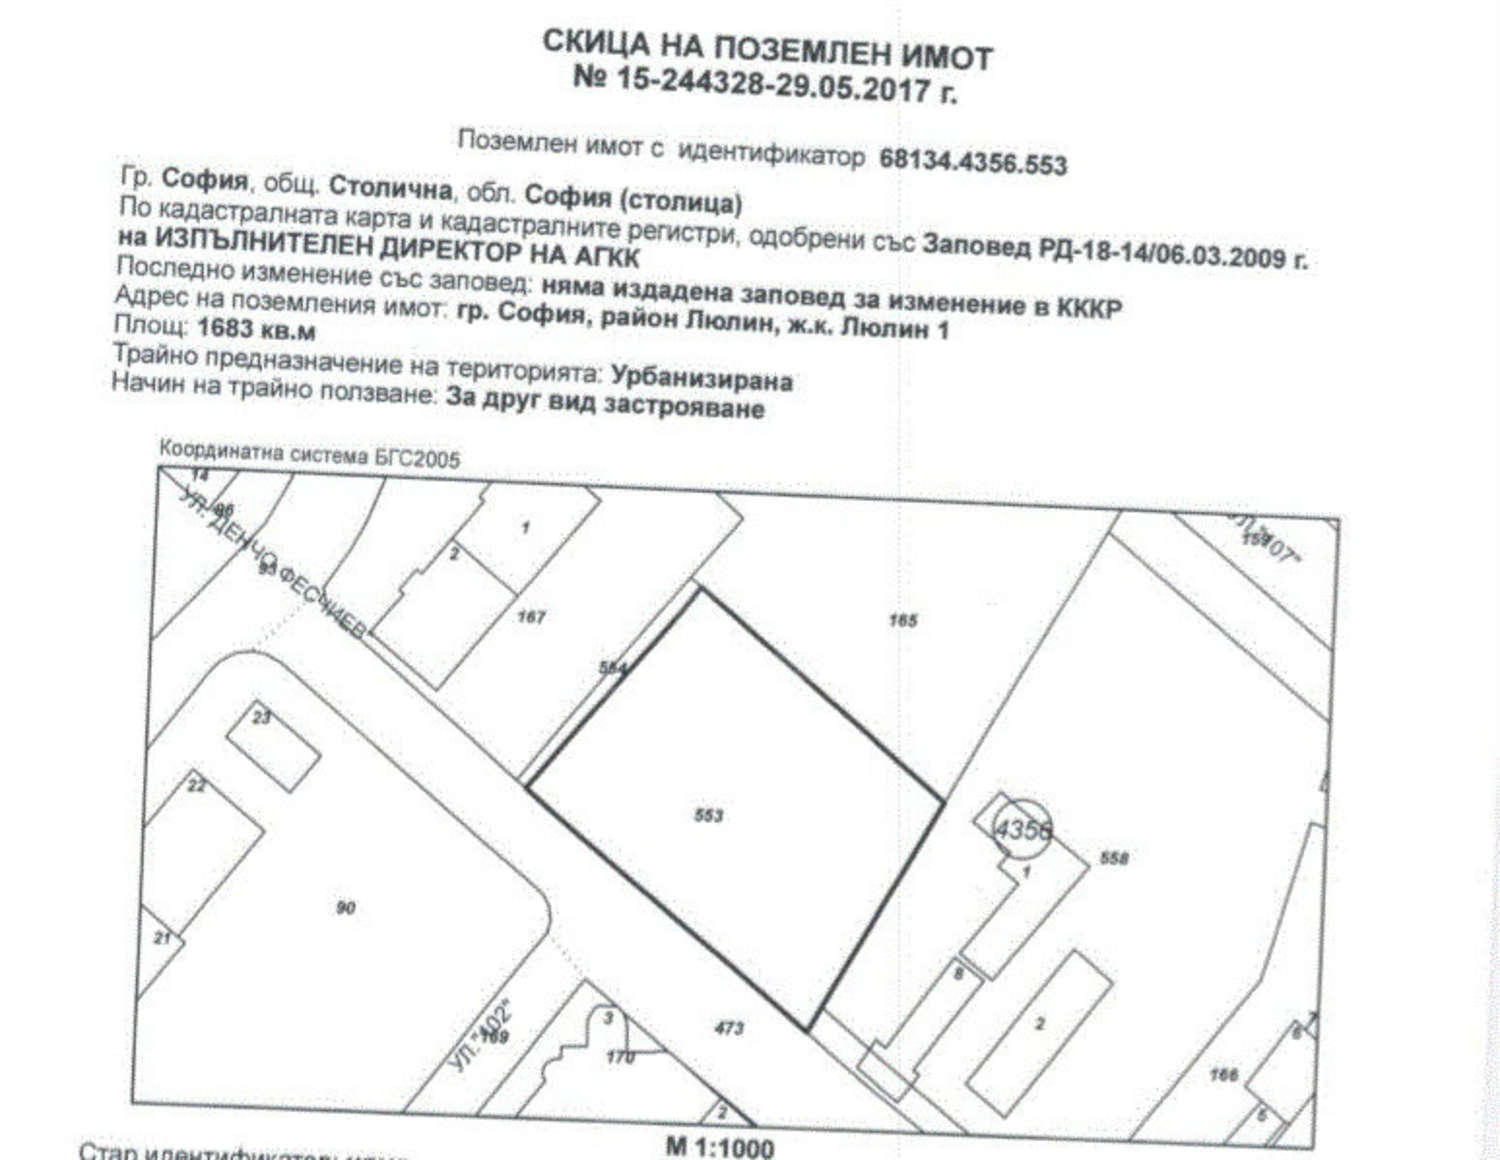 Investment Land For Sale In Sofia Quarterlyulin 1 109 Bulgaria